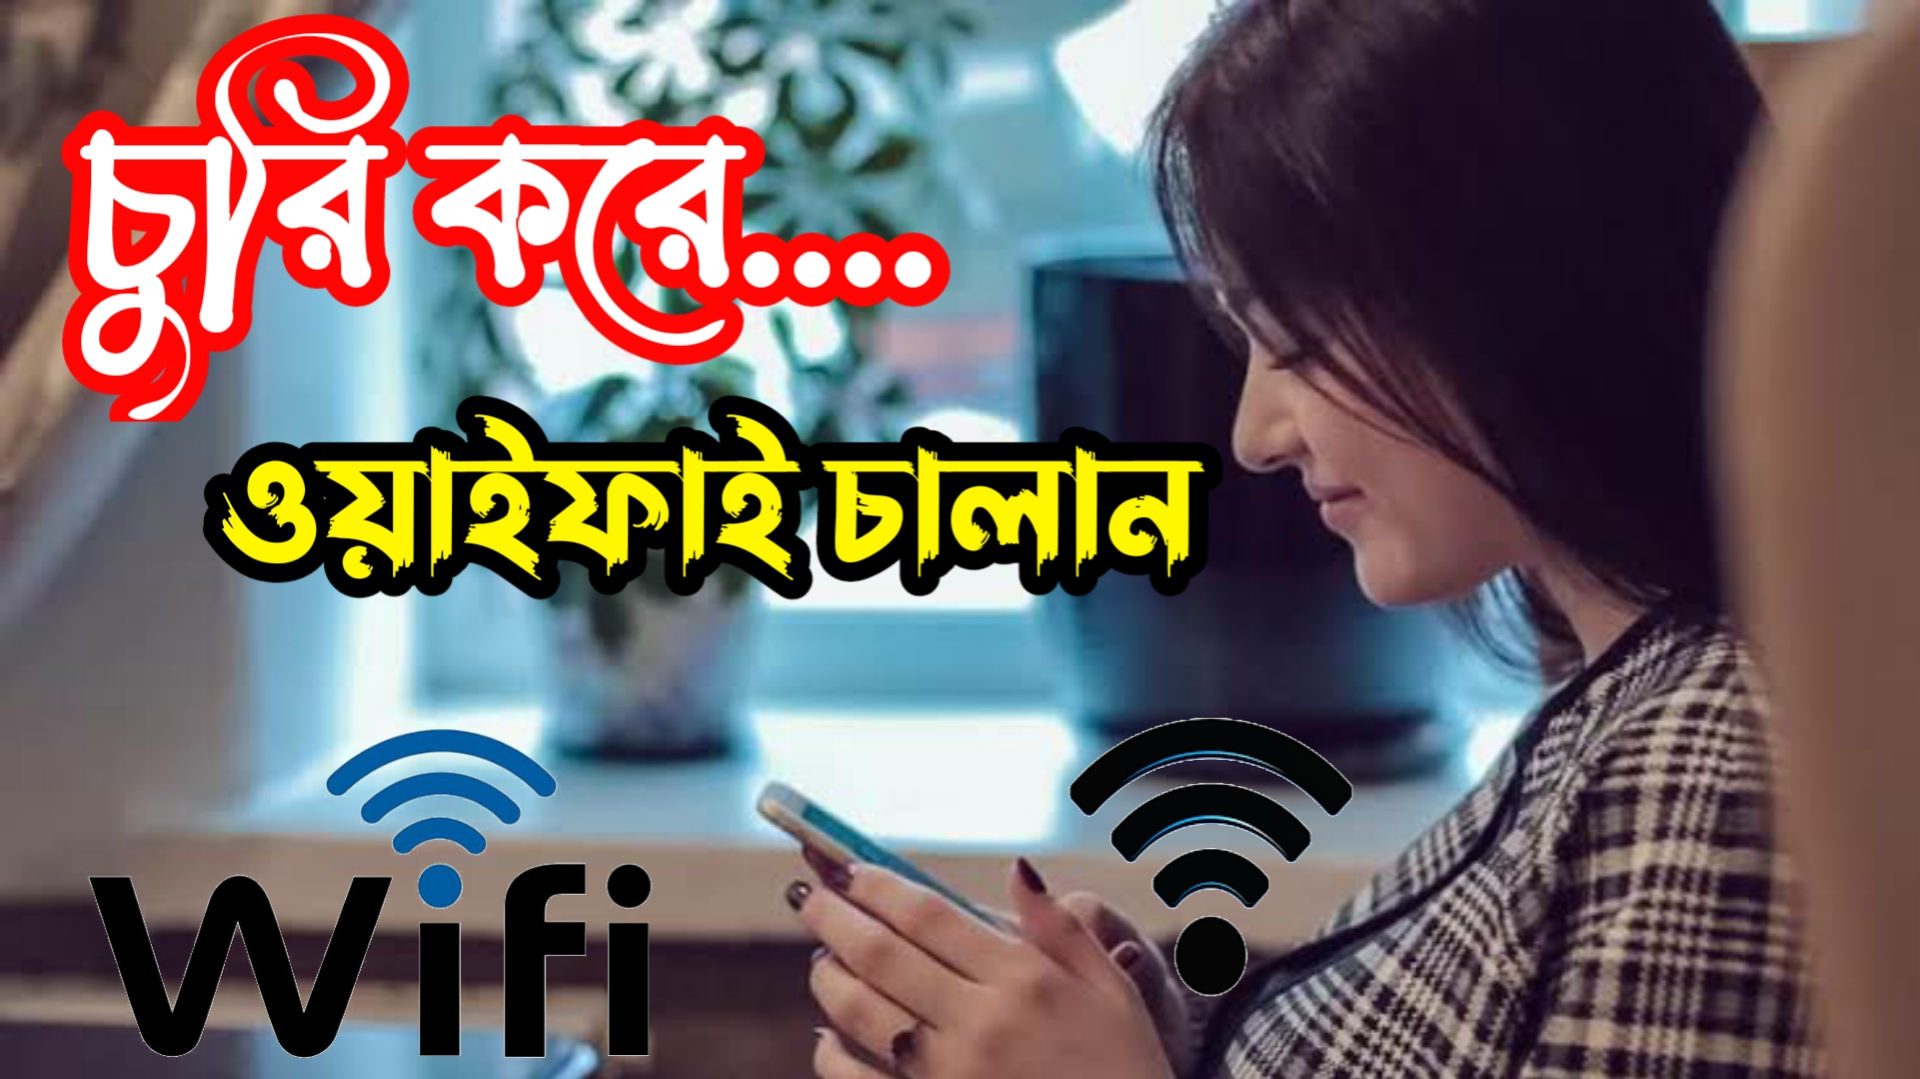 HOW TO HIDE WIFI SIGNAL IN NOTIFICATION PANEL !! USE HIDING WI-FI IN BANGLA